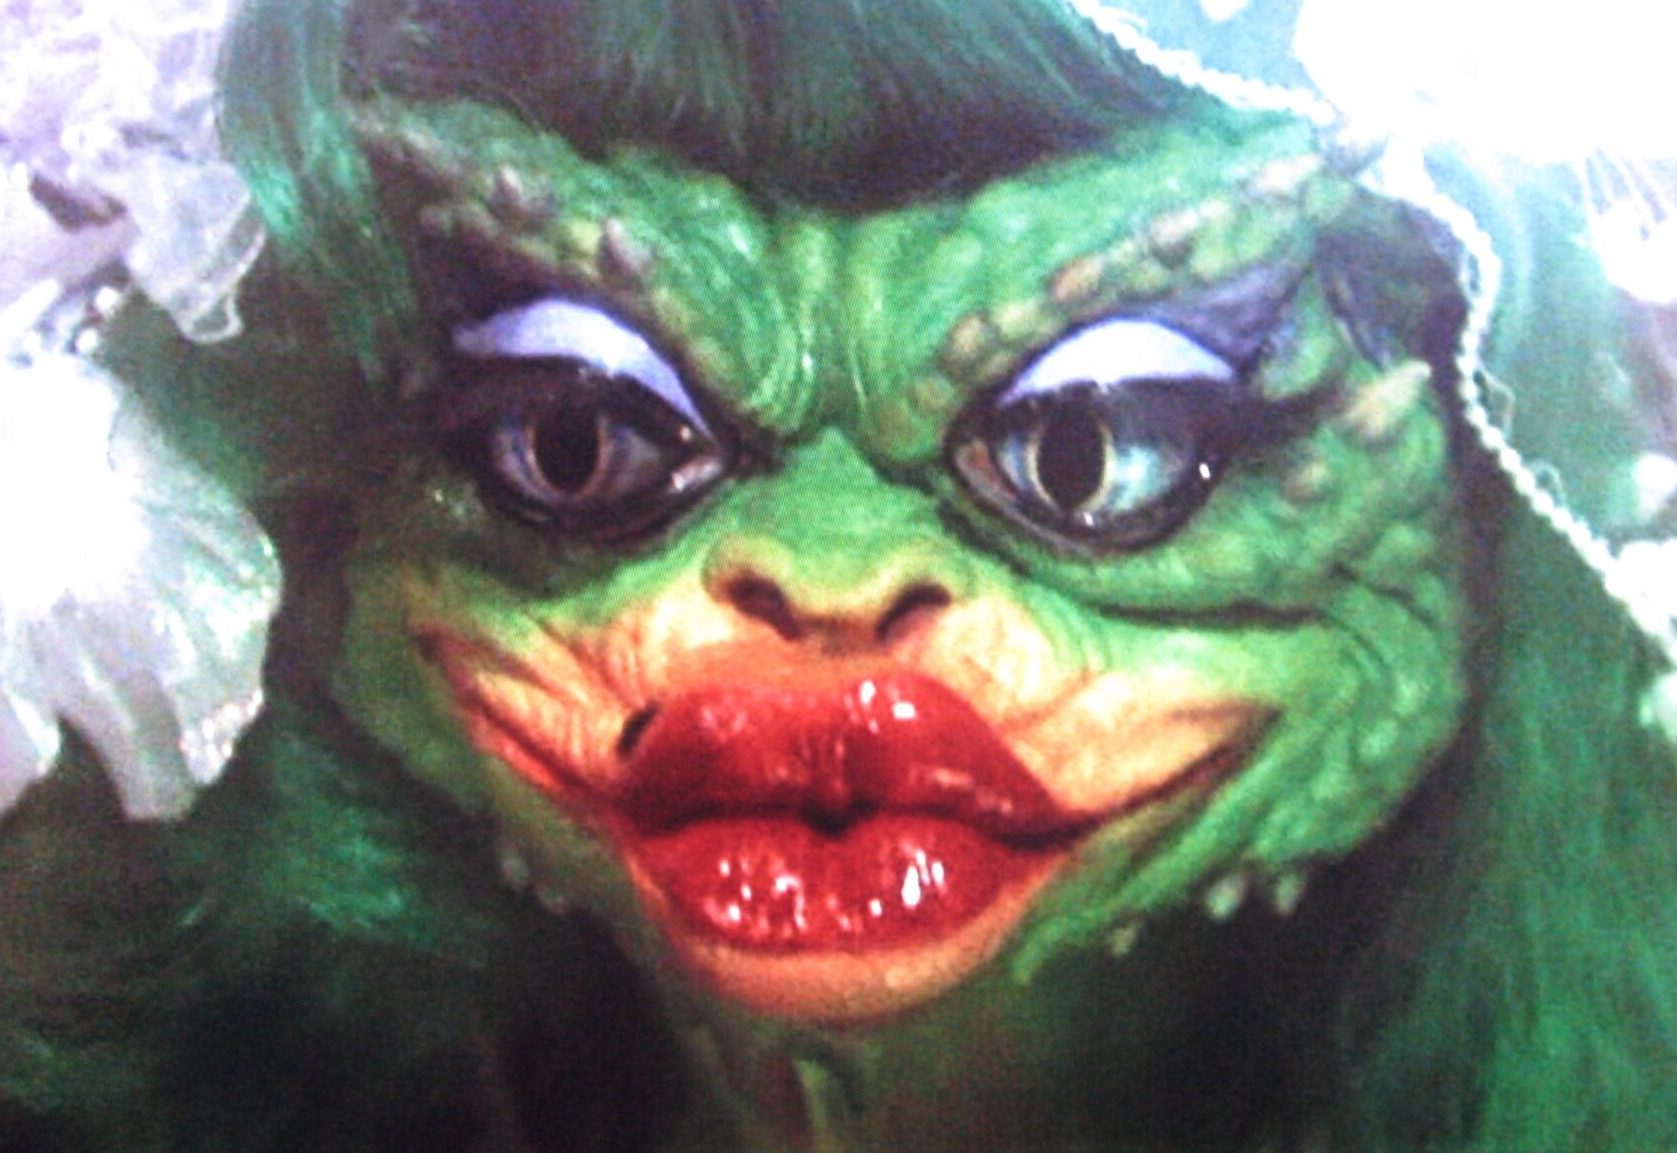 gremlins 2 baby lady gremlin close up scaled 1 These Are The Weirdest Horror Movie Franchise Instalments Of All Time